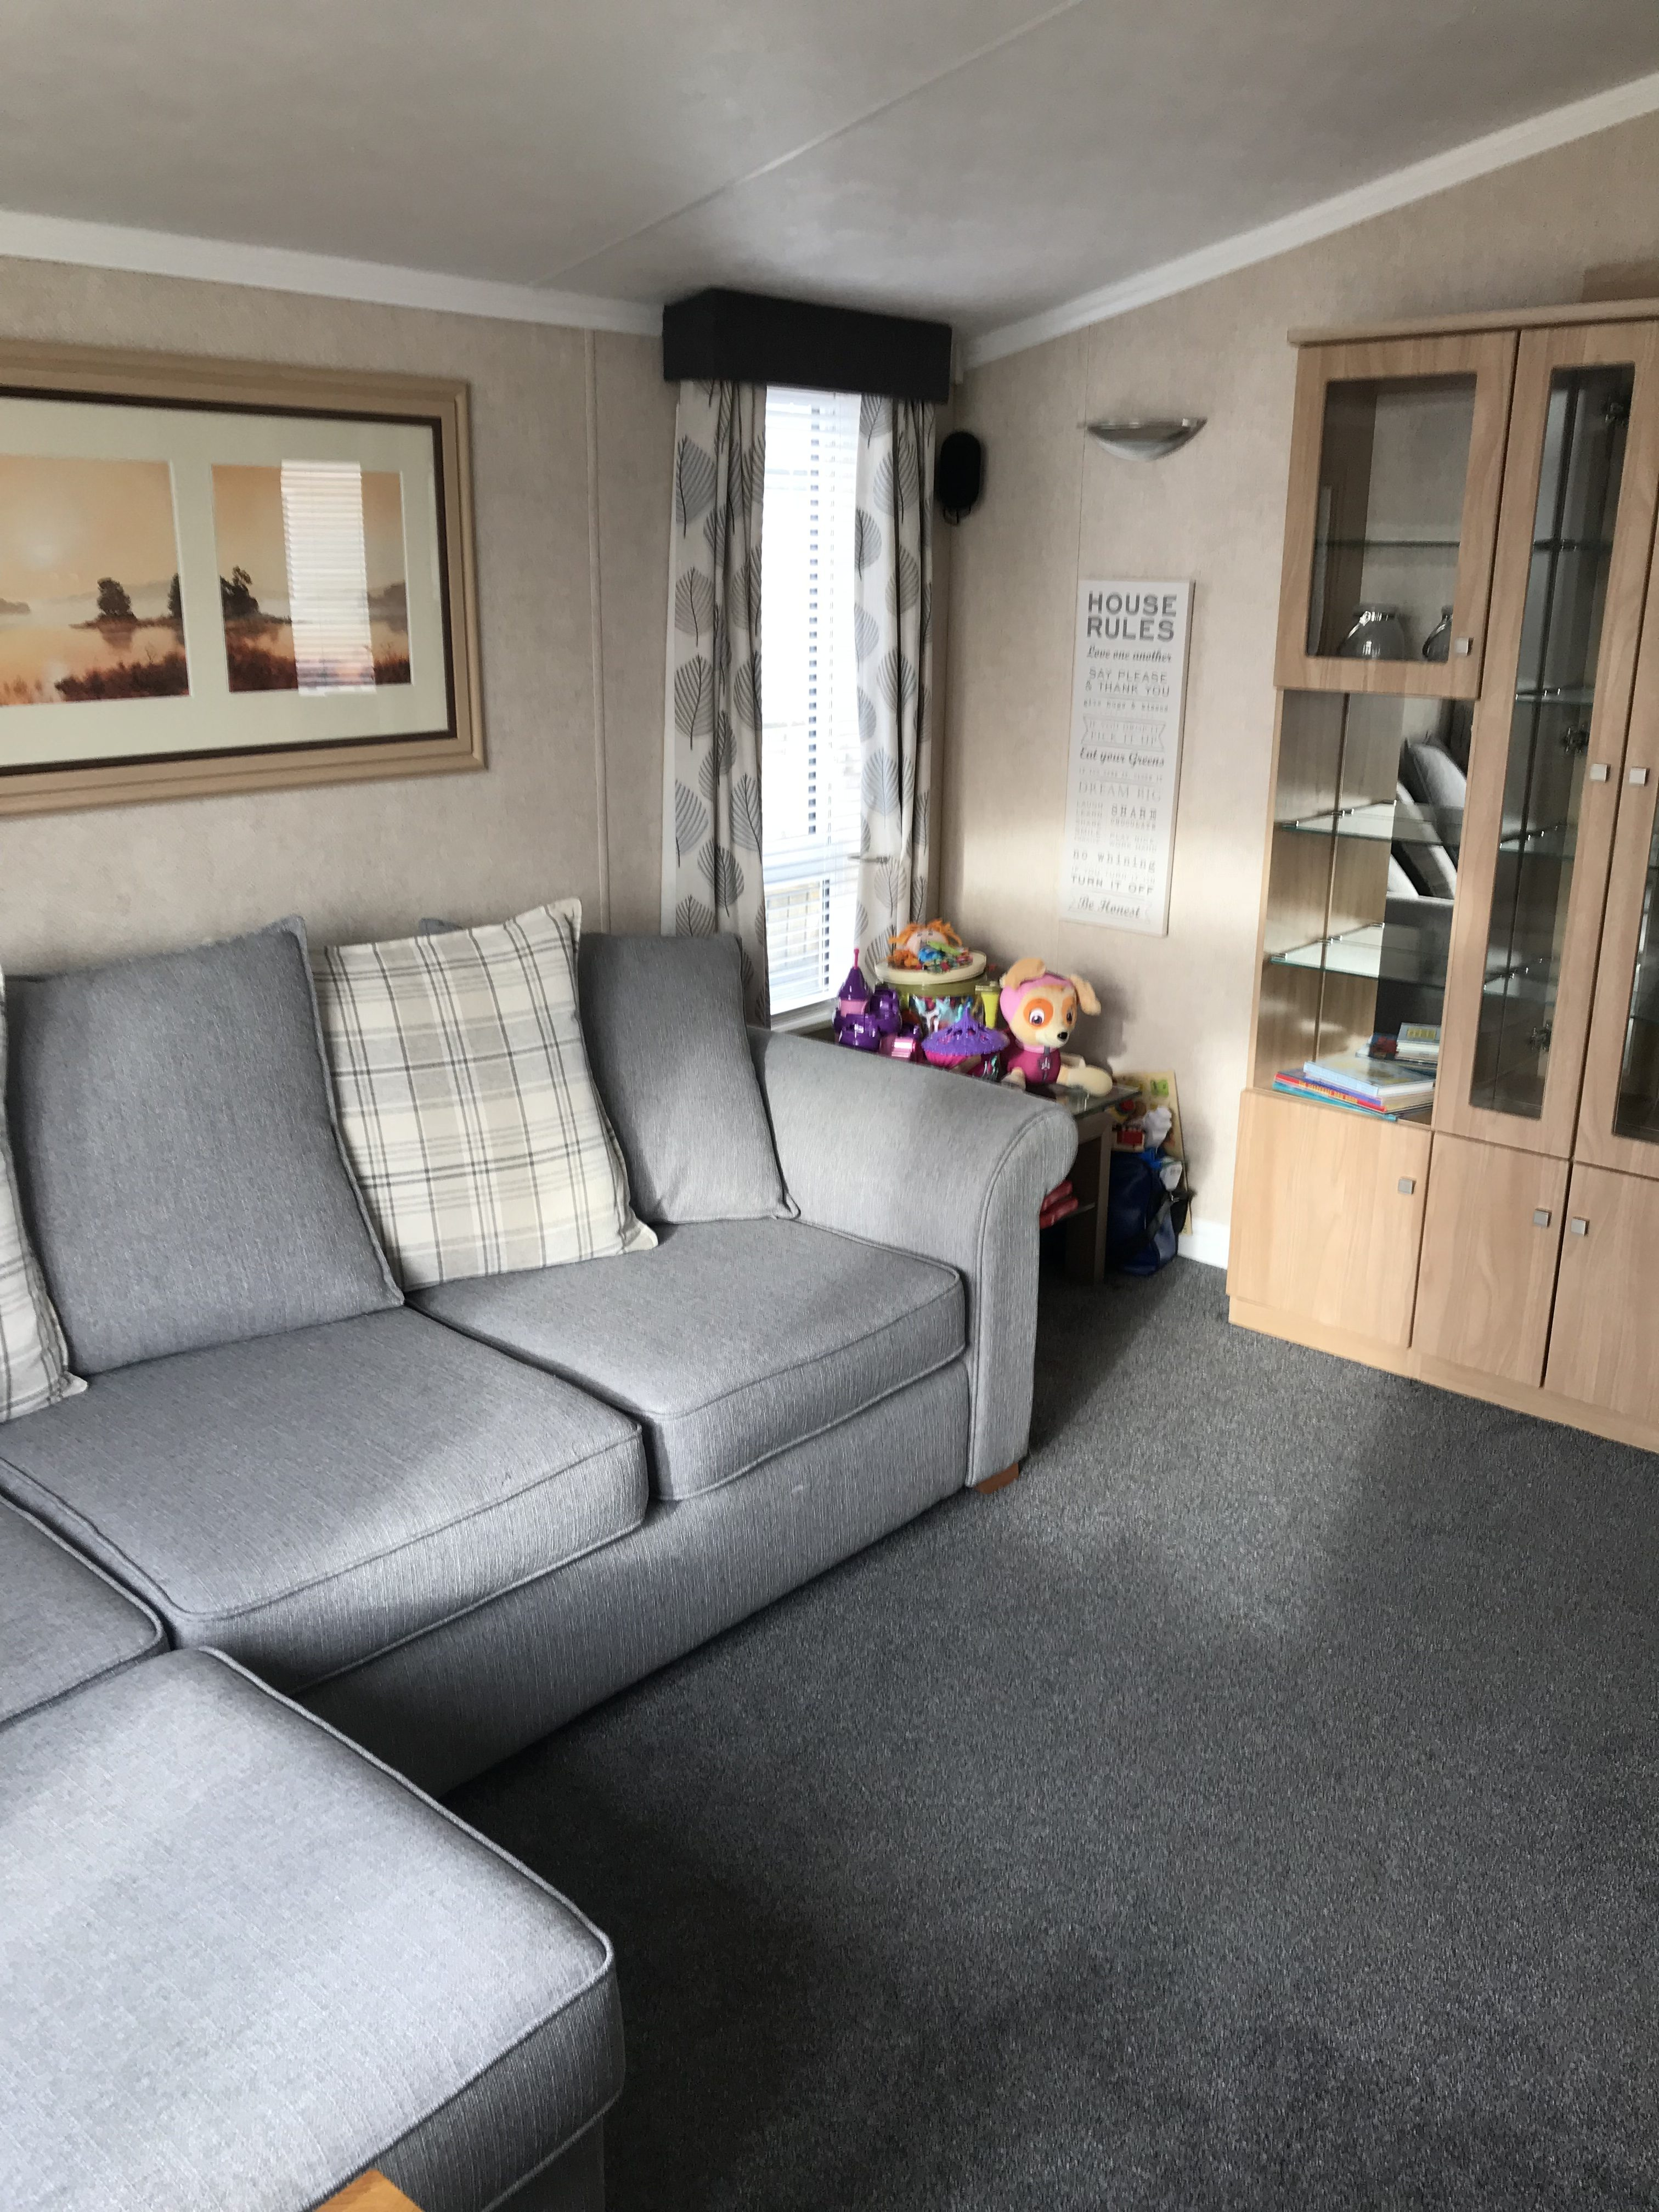 Willerby vogue – Caravan Bug - Buy and Sell UK and All Ireland